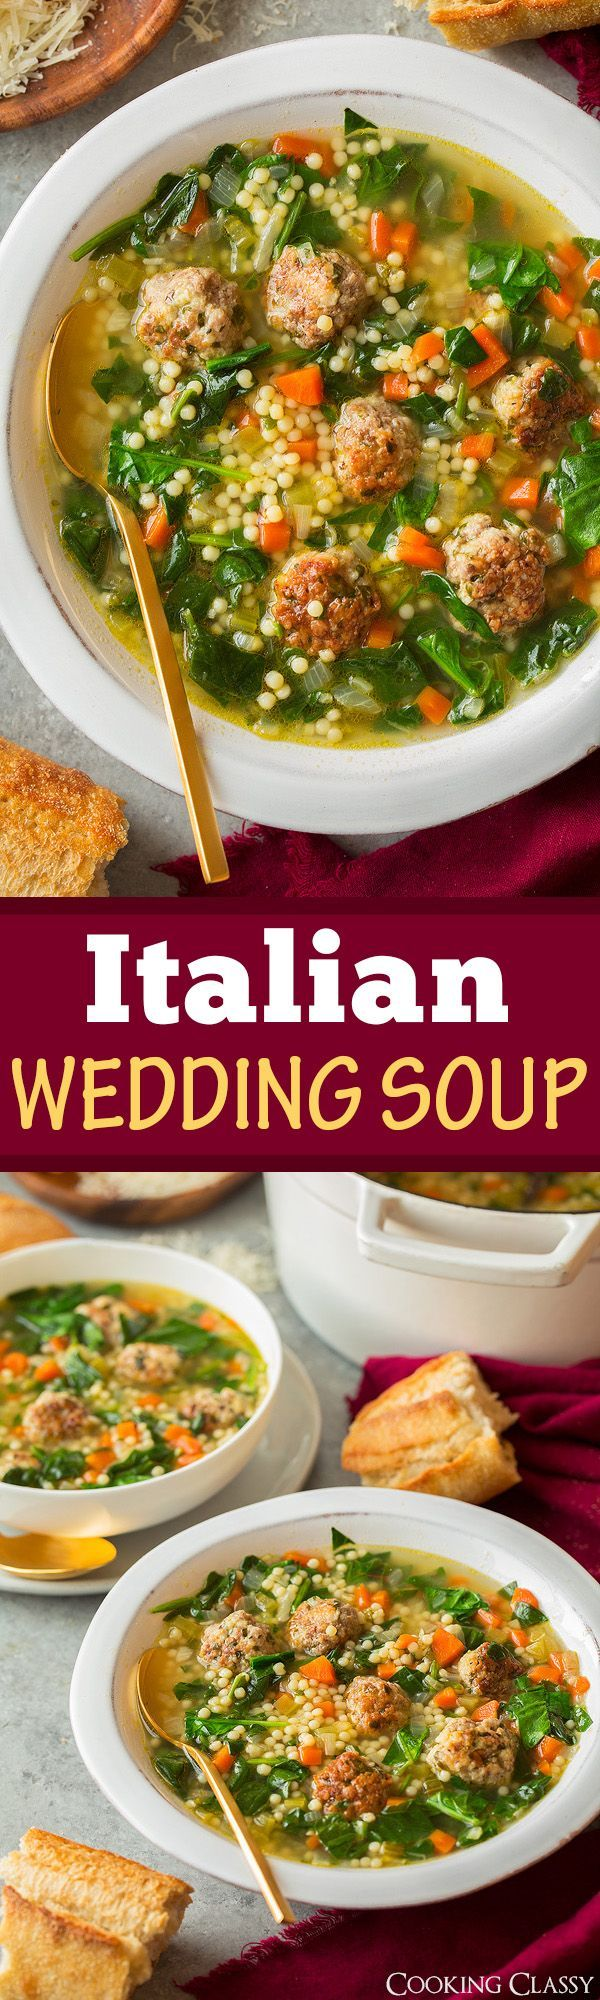 A delicious and hearty soup made with bite size herbed beef and pork meatballs, veggies and acini de pepe pasta. So good it may become a new favorite! #italianweddingsoup